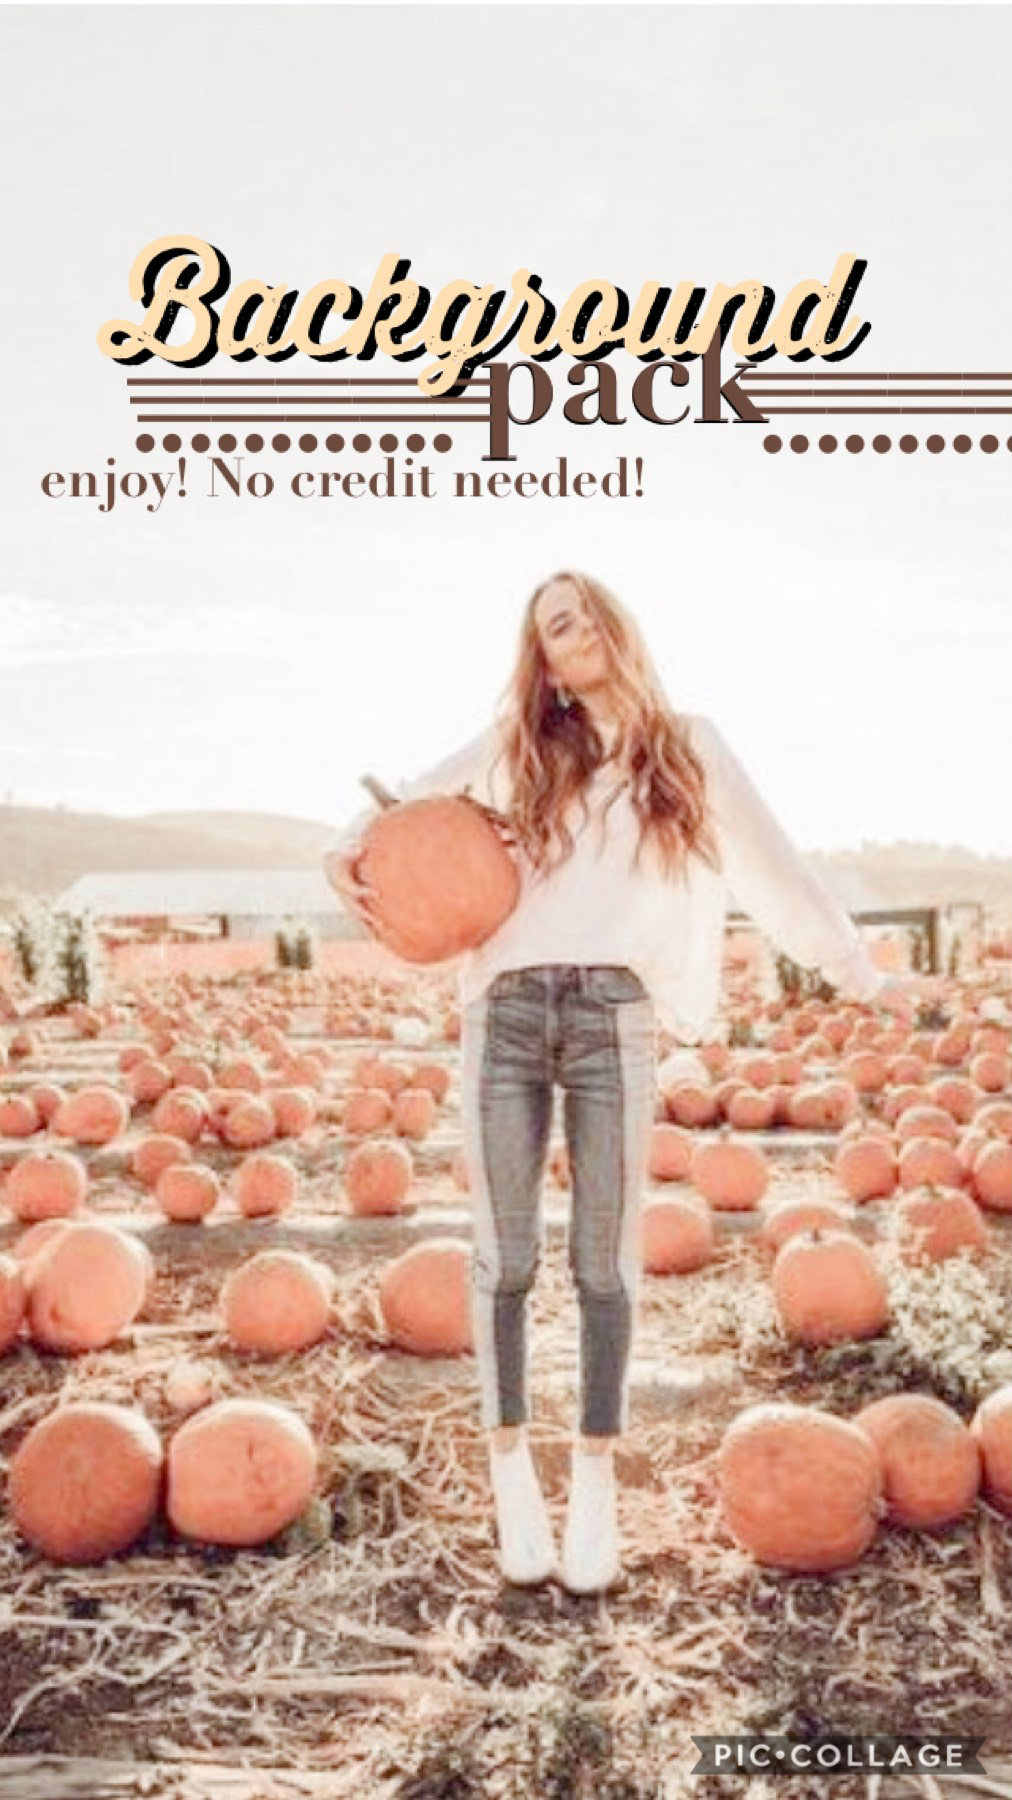 Tap!! Happy Fall y'all!! Background pack for ya!! No credit needed!! Have a wonderful day!! ✨✨✨✨✨